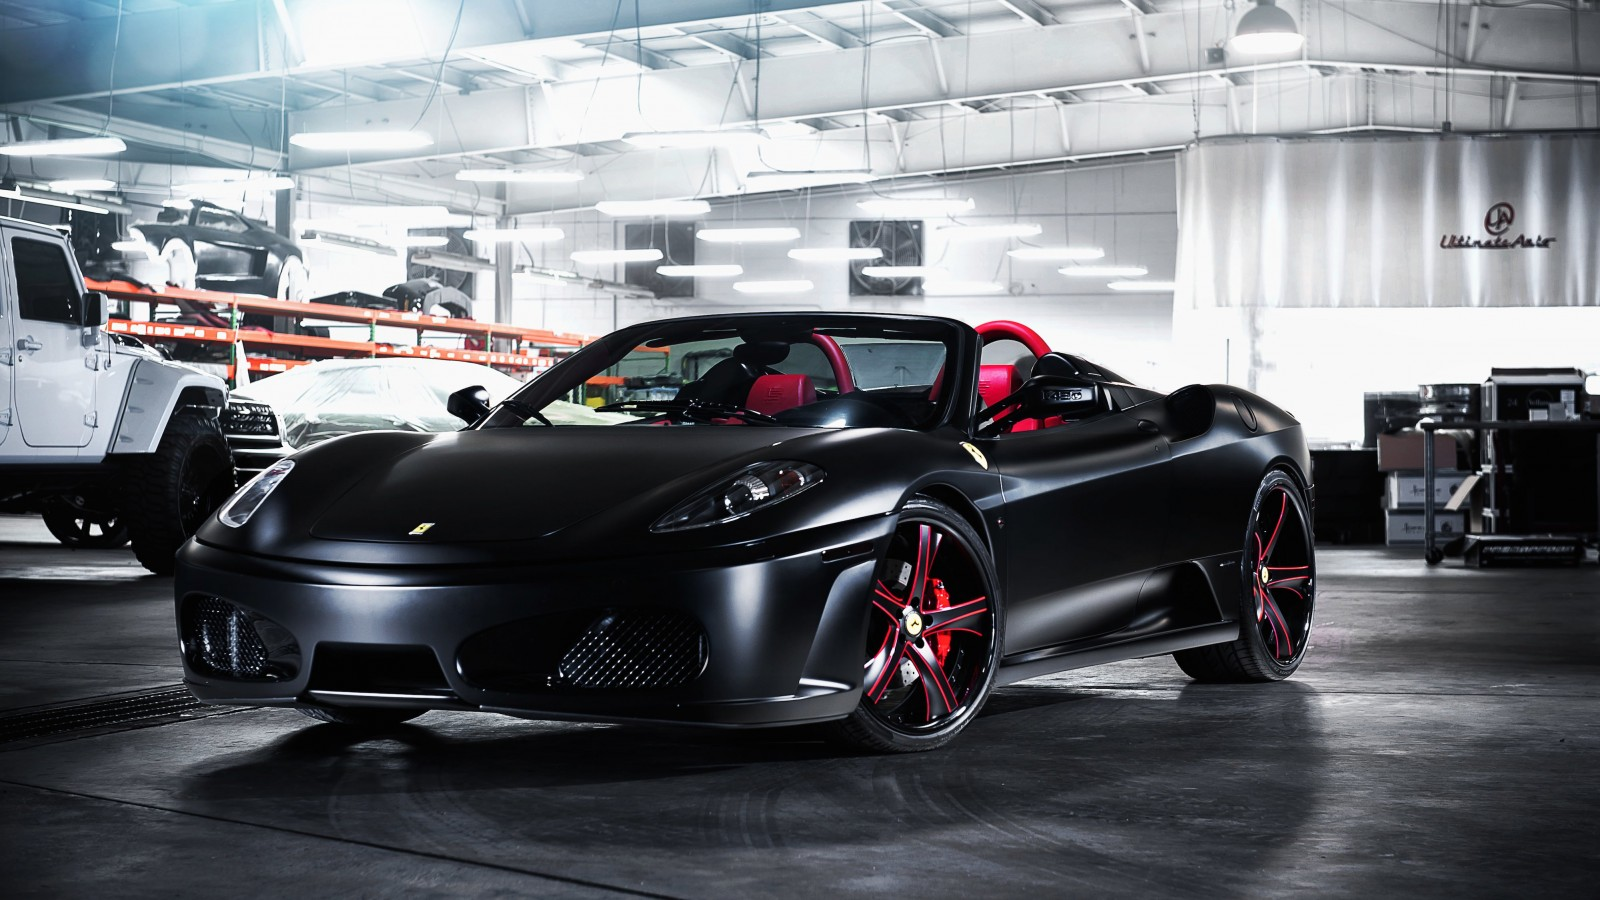 Matte Black Ferrari F430 on Savini Wheels Wallpaper for Desktop 1600x900